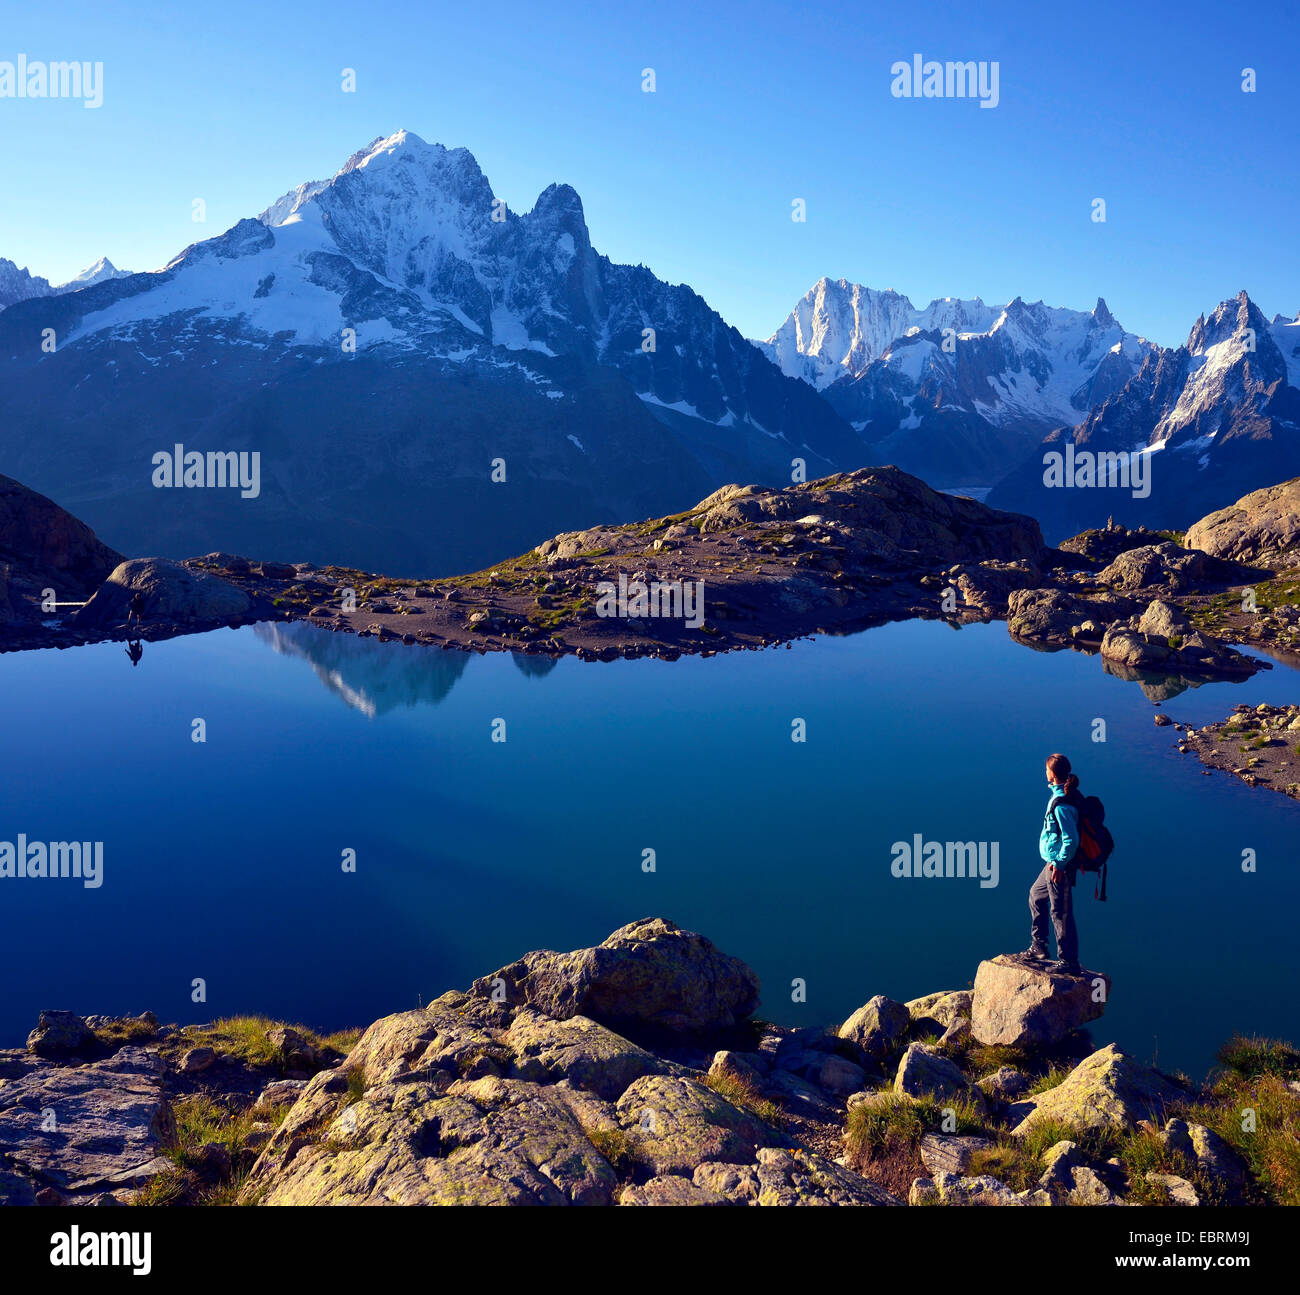 mountain hiker at lake Blanc in front of Aiguille Verte, France, Haute-Savoie, Chamonix - Stock Image